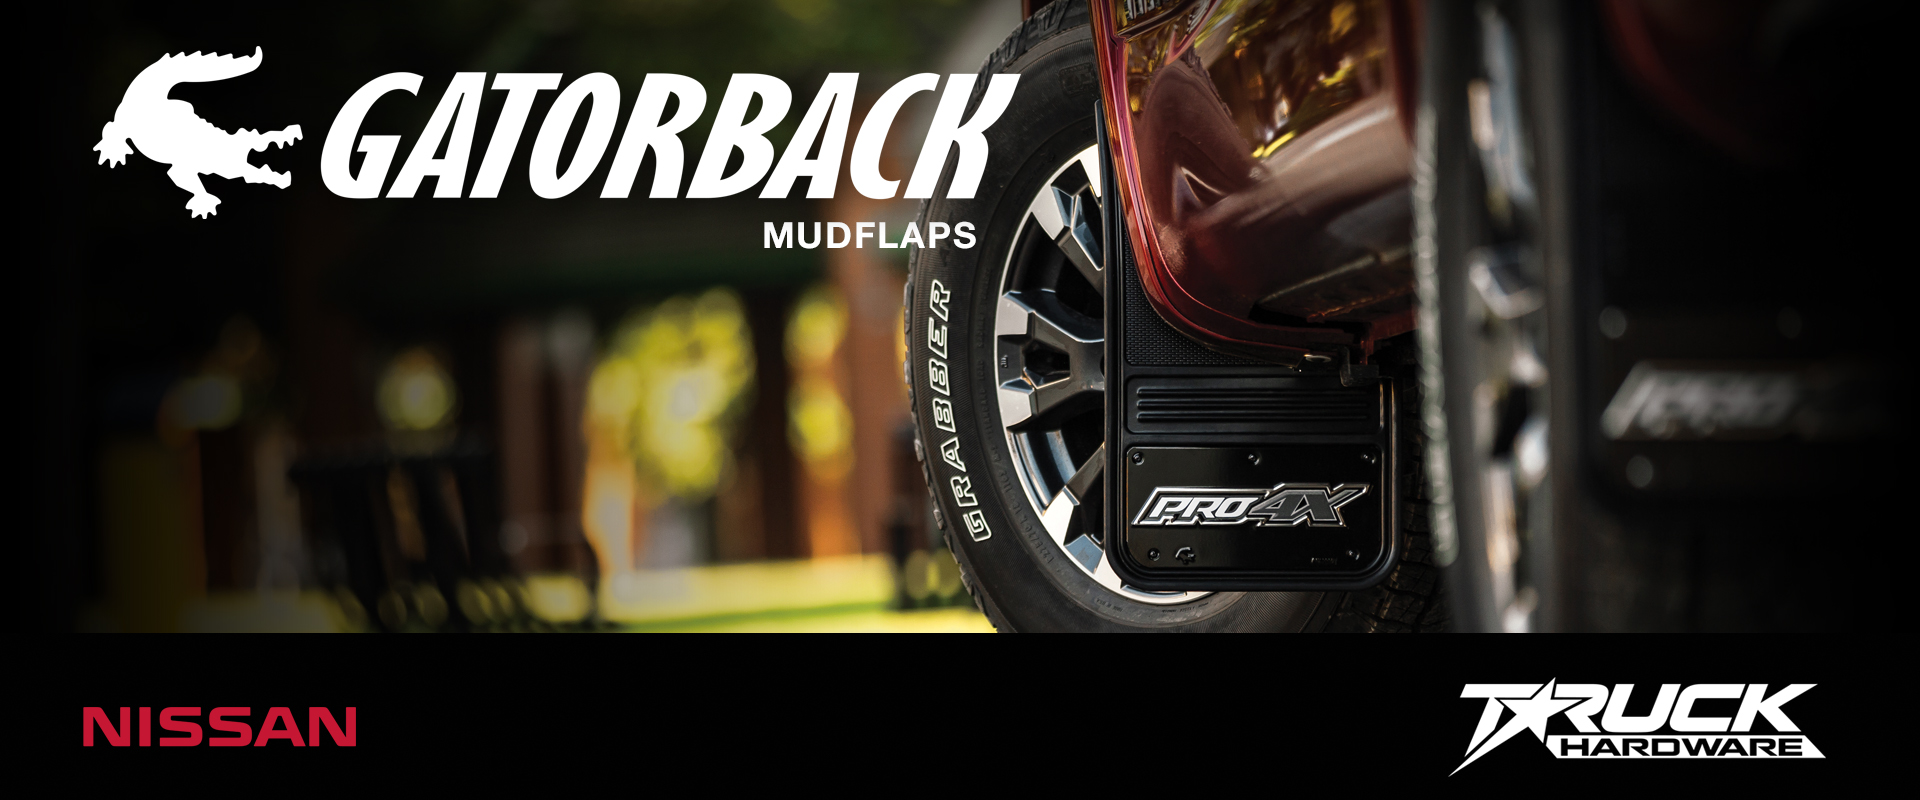 Gatorback CR Mud Flaps for 2018 Nissan Titan PRO-4X